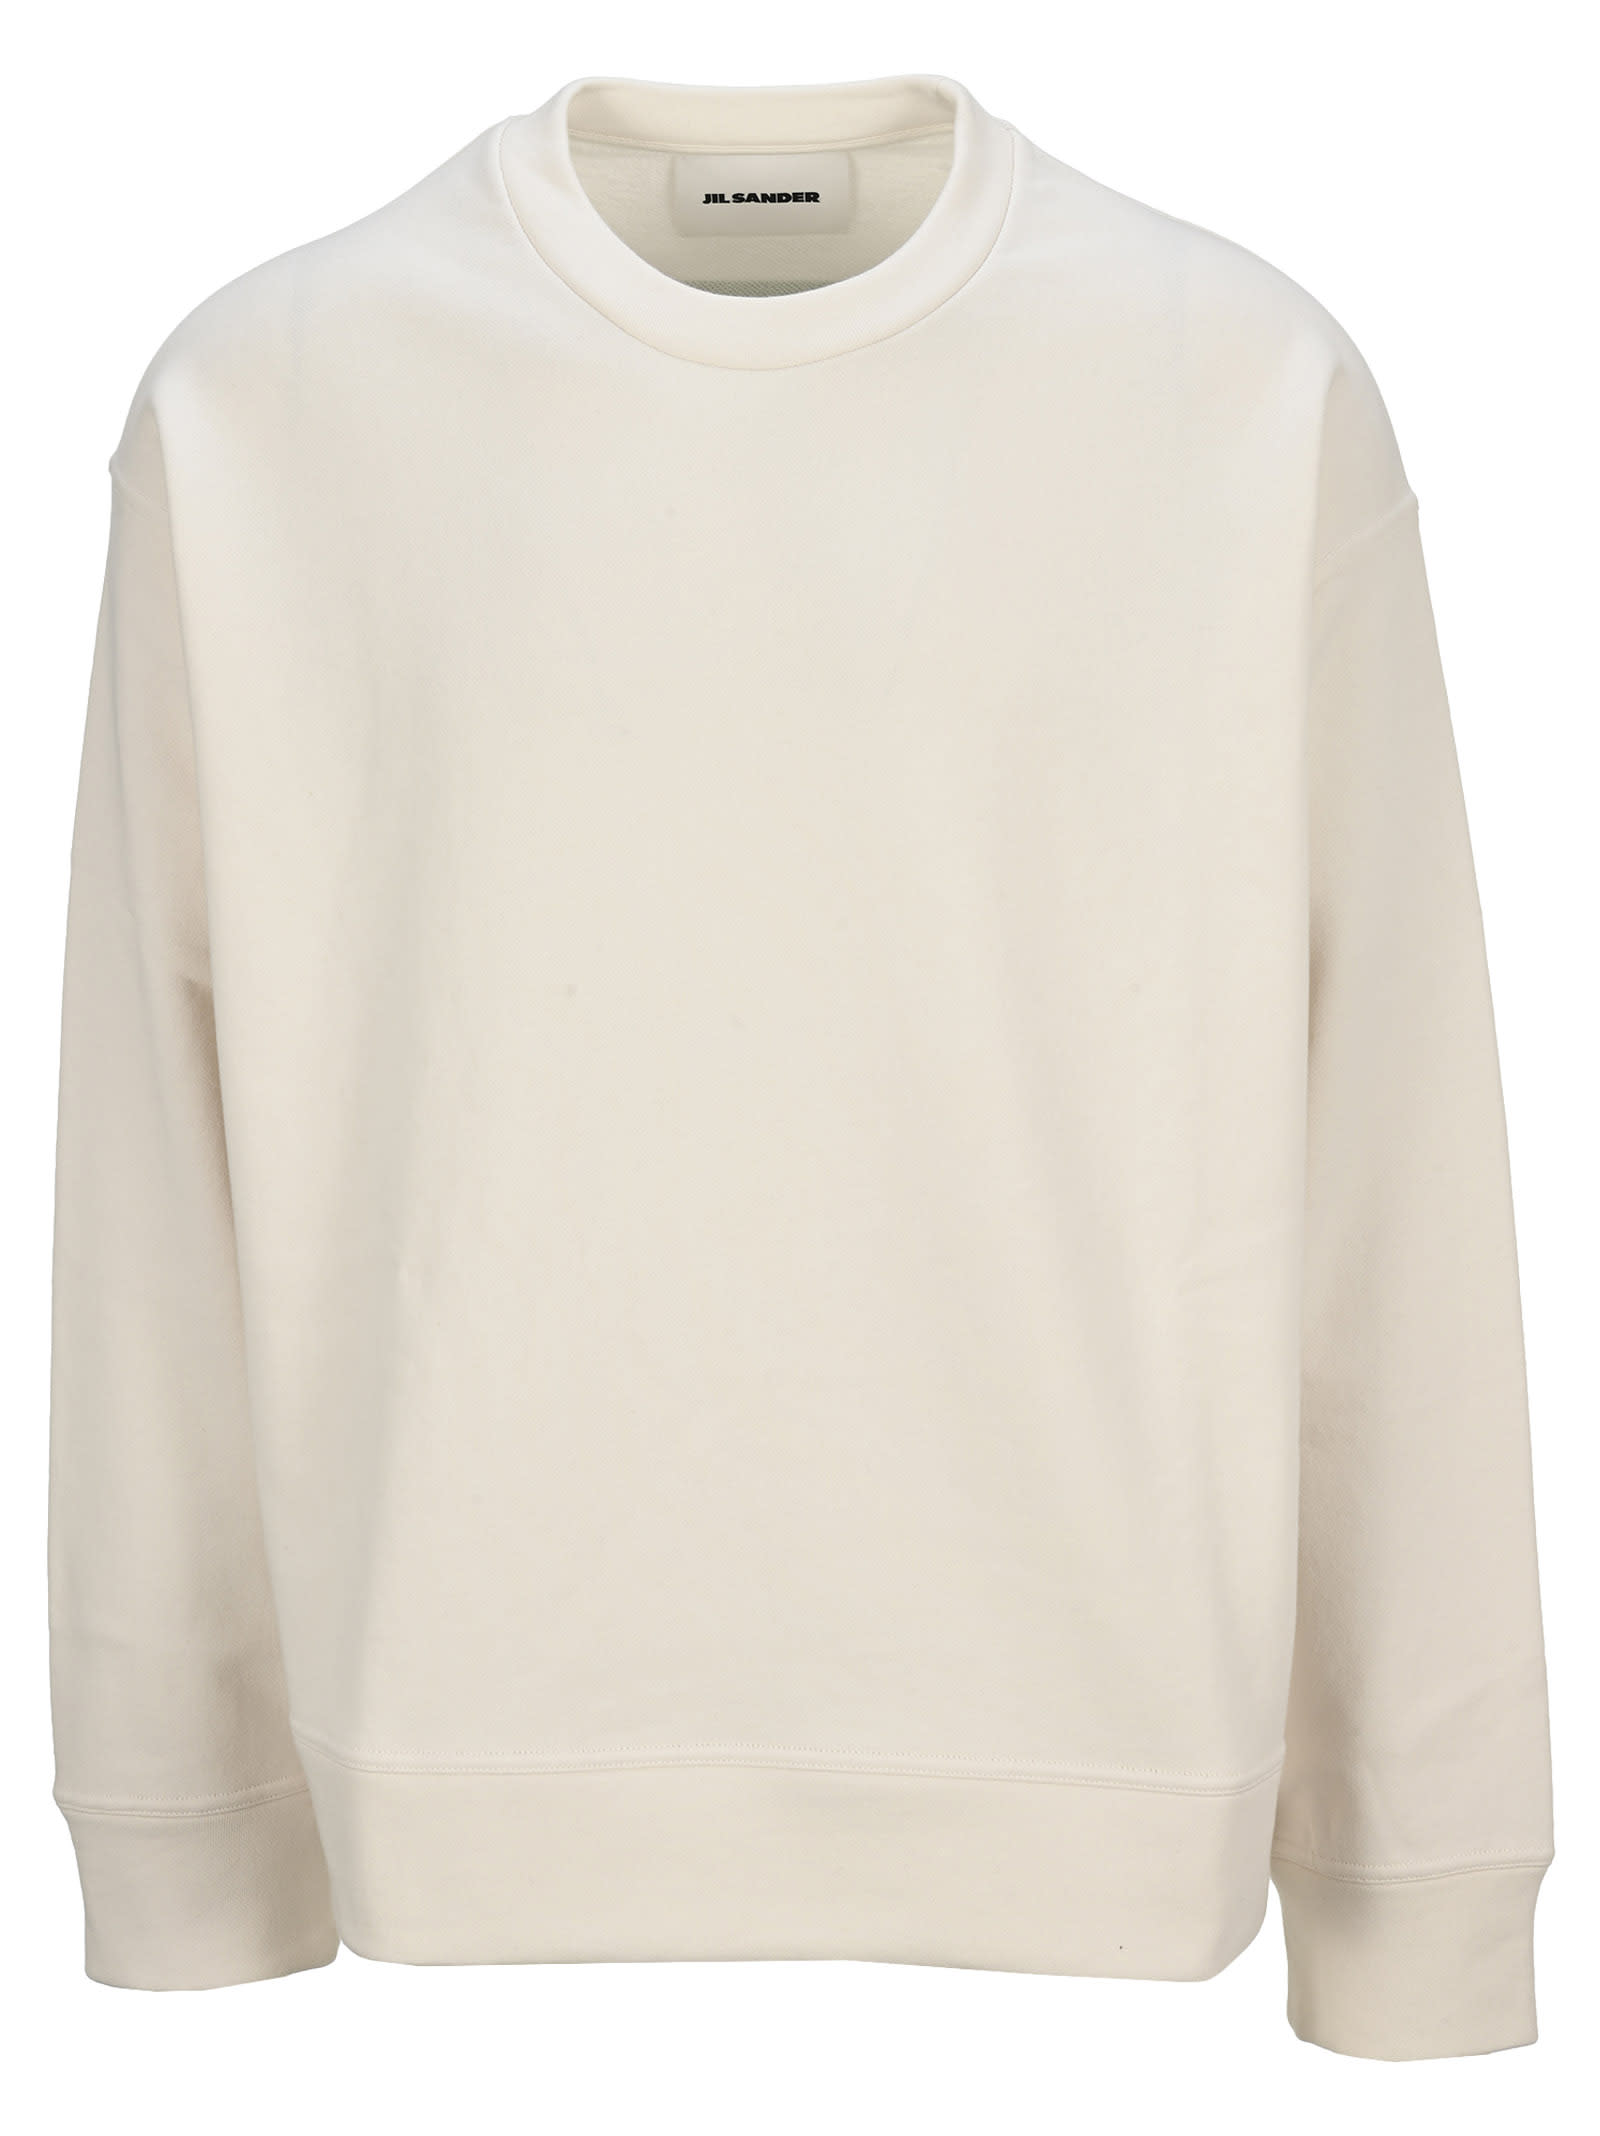 Jil Sander COTTON CREWNECK